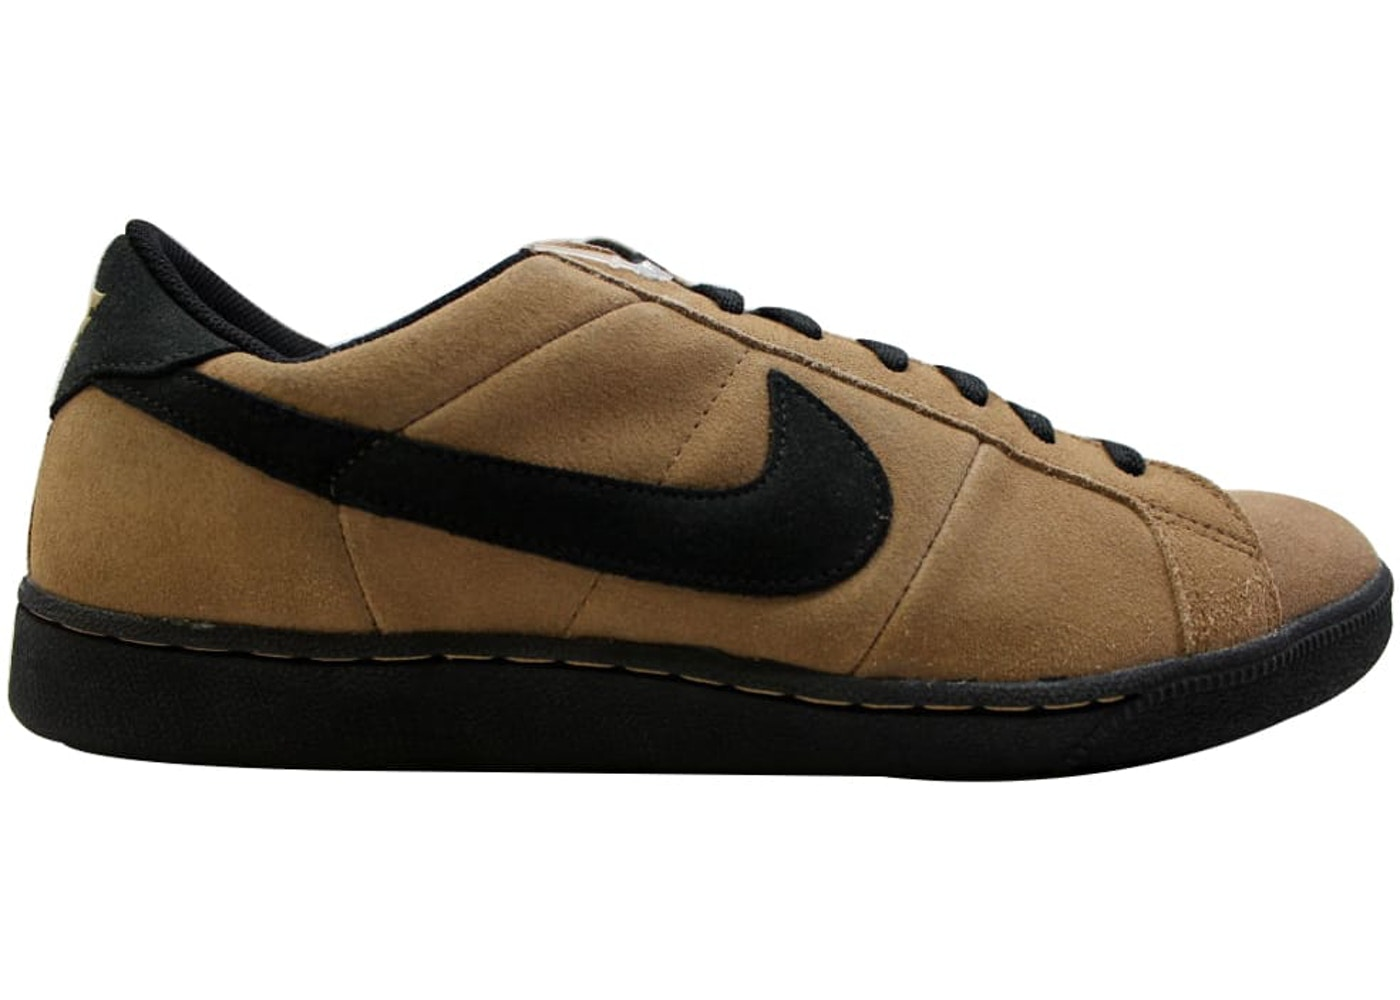 photos officielles a48e4 79a4a Nike Air Classic SB Taupe/Black